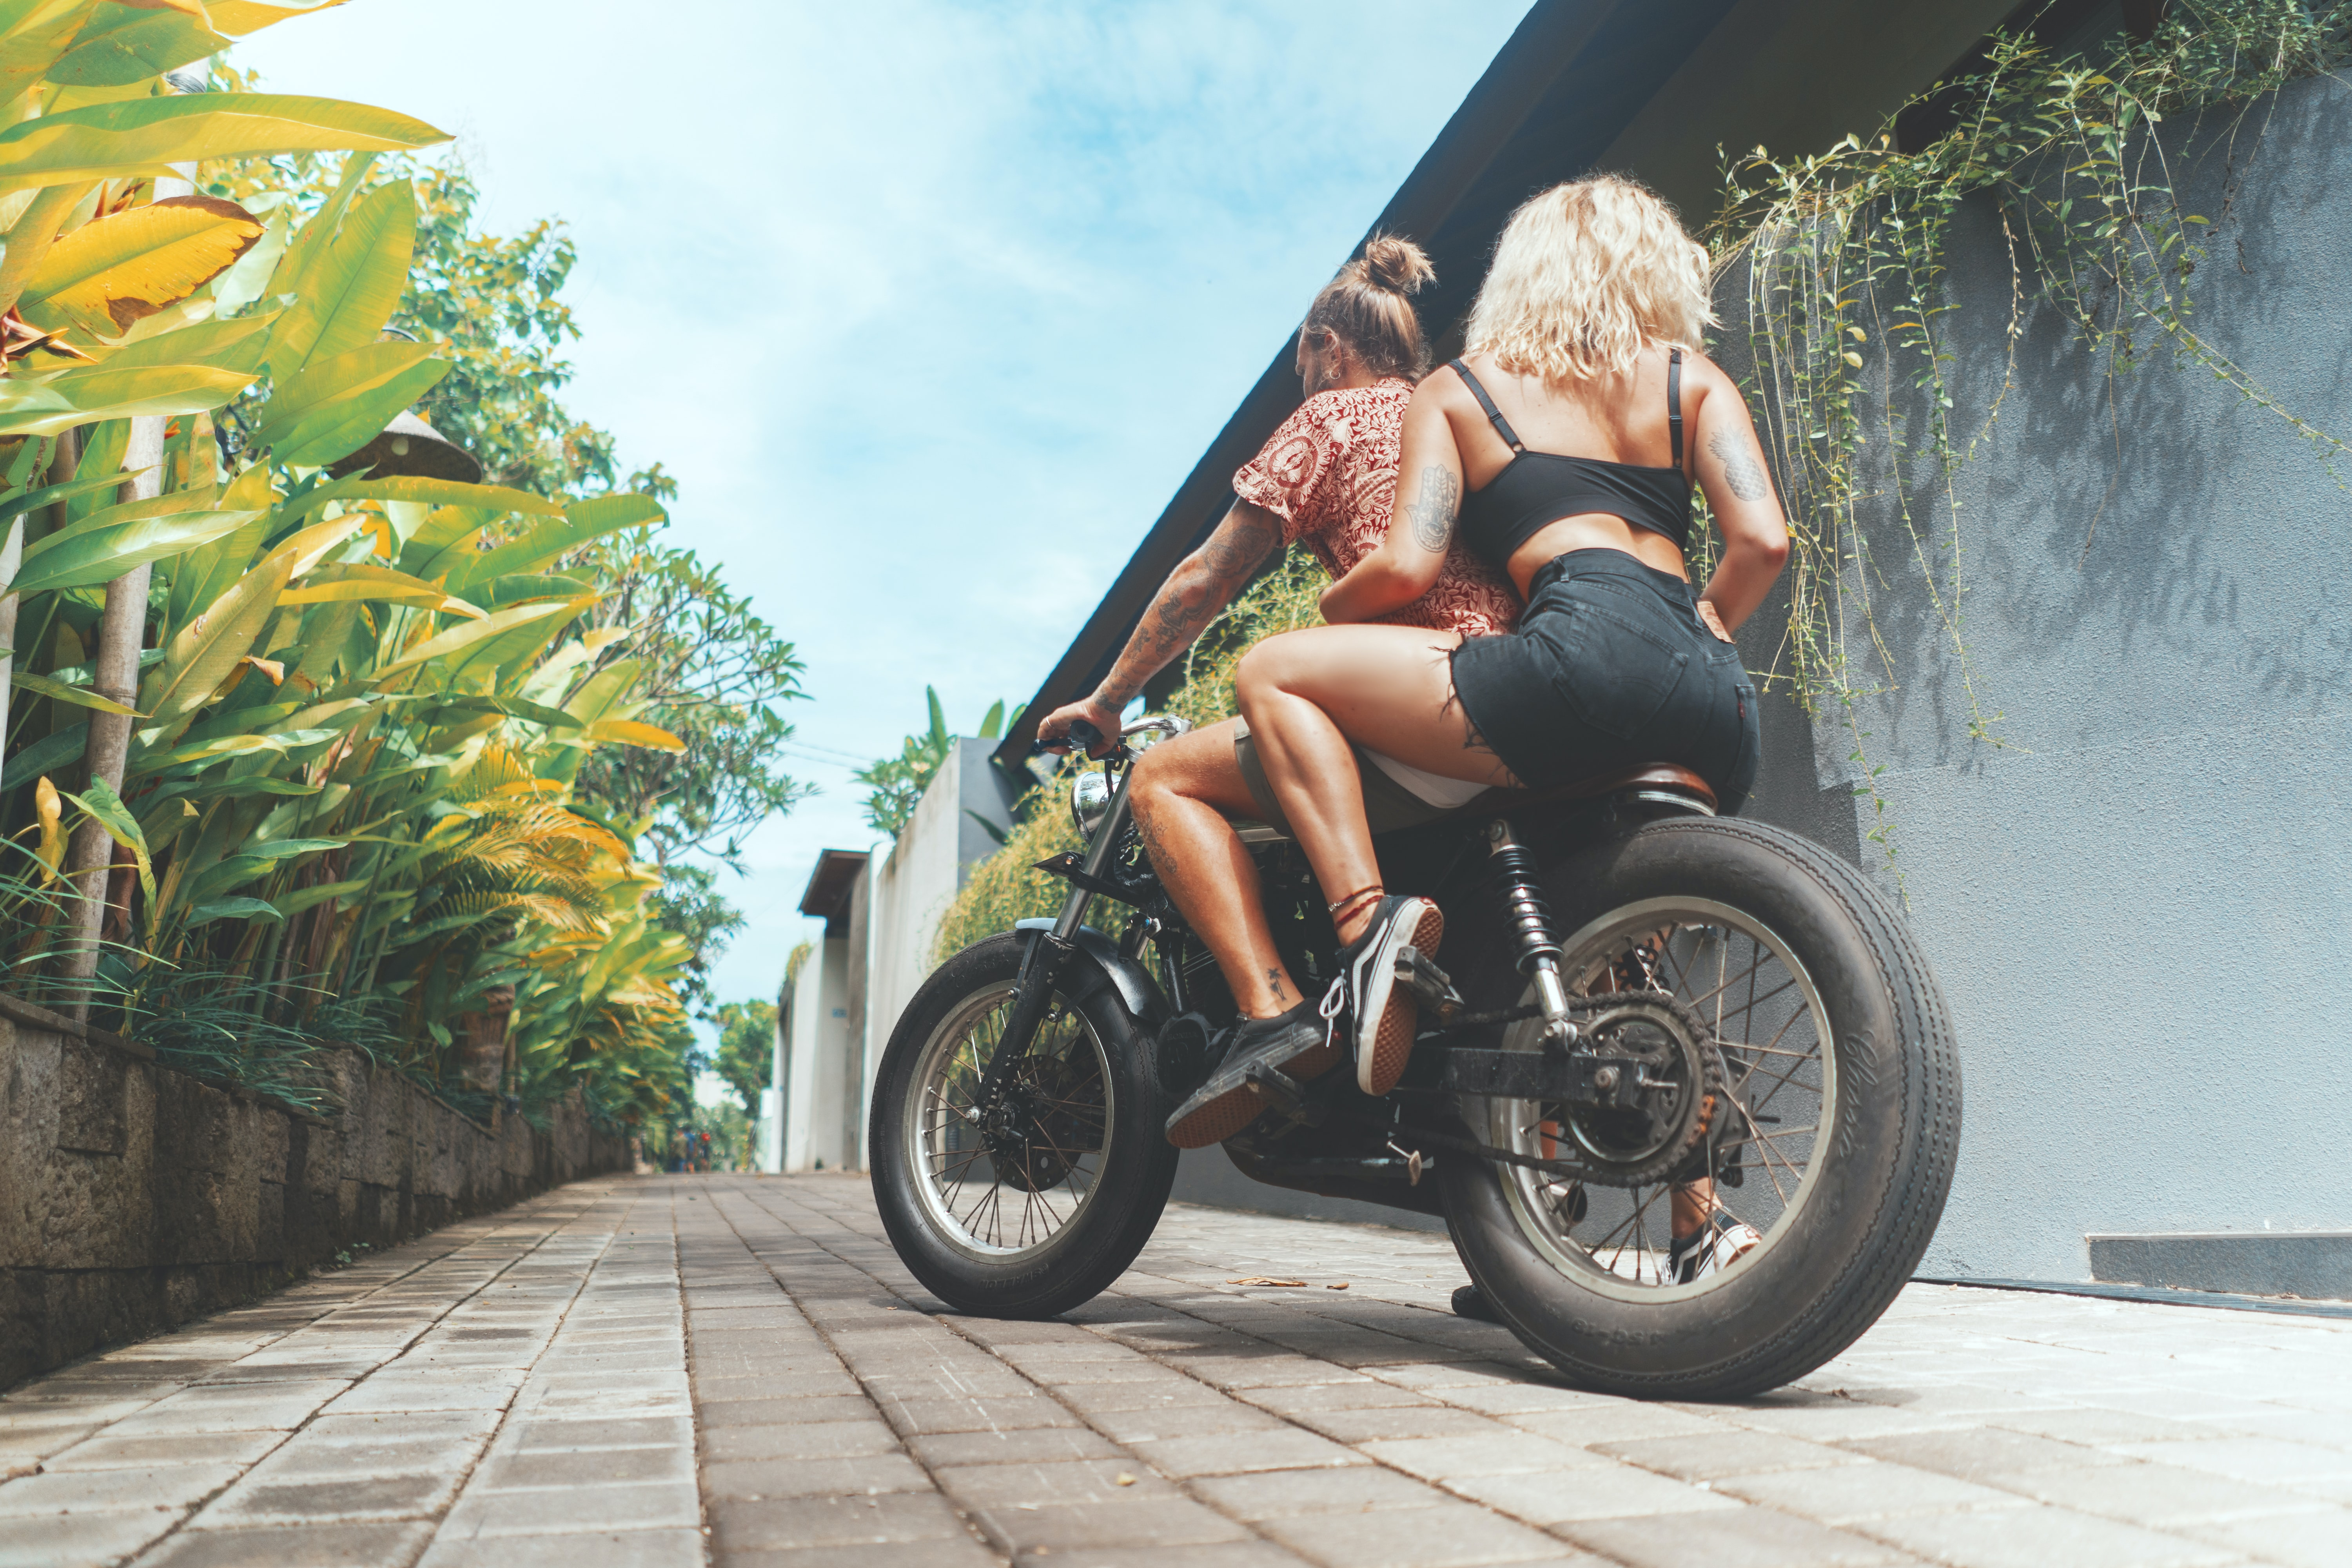 two women riding on black motorcycle during daytime